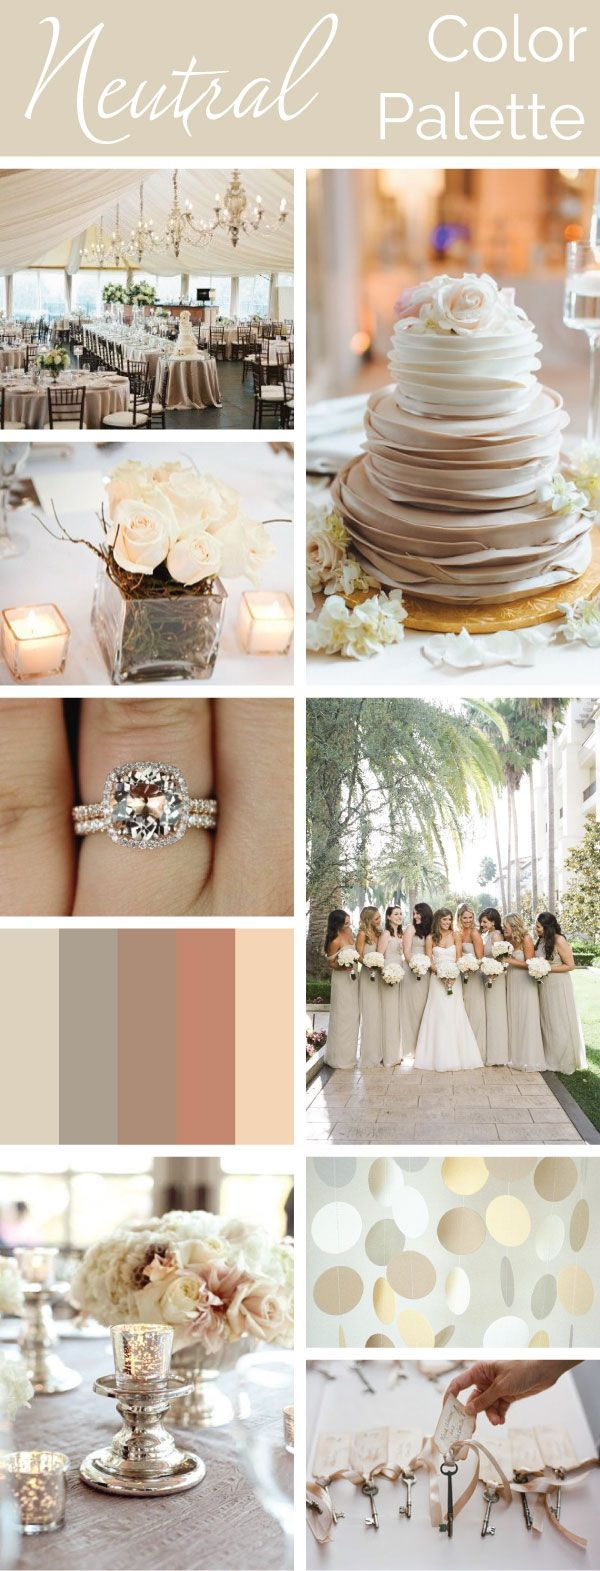 Neutral Color Palette: Simple, Elegant, Versatile. #wedding-pinned by wedding decorations specialists http://dazzlemeelegant.com